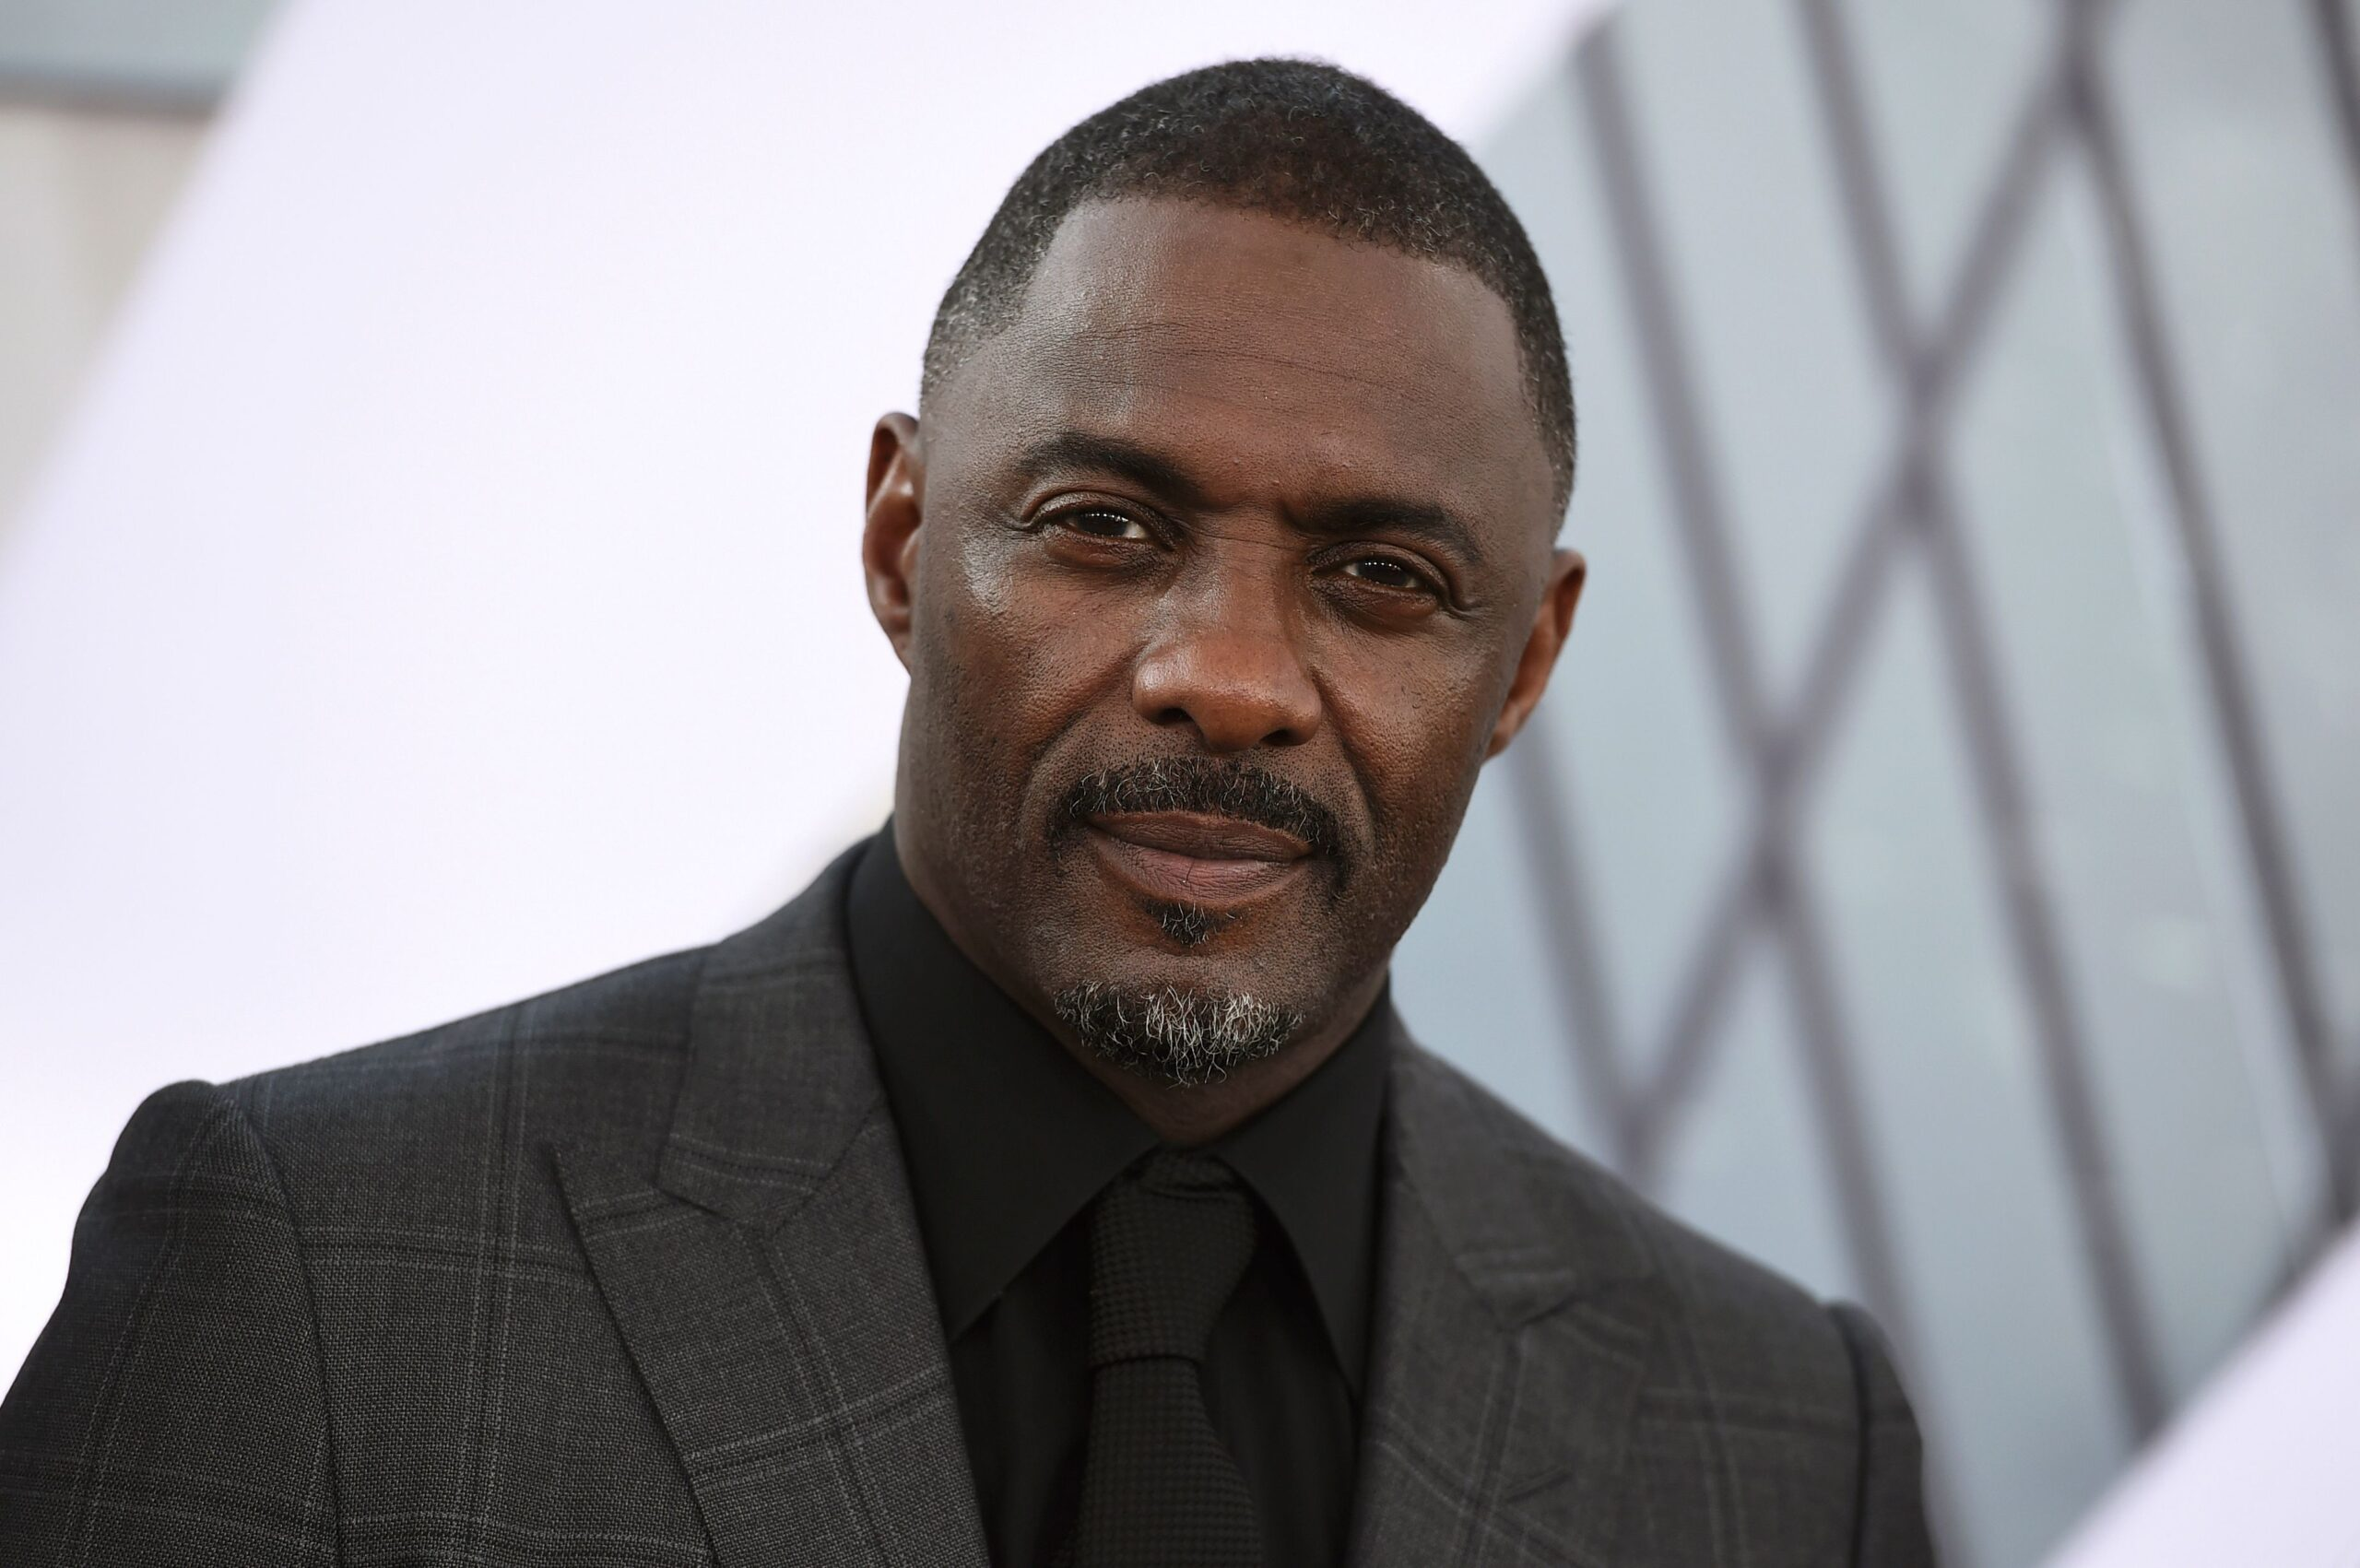 Idris Elba Speaks Out About Preventing Racism on Social Media